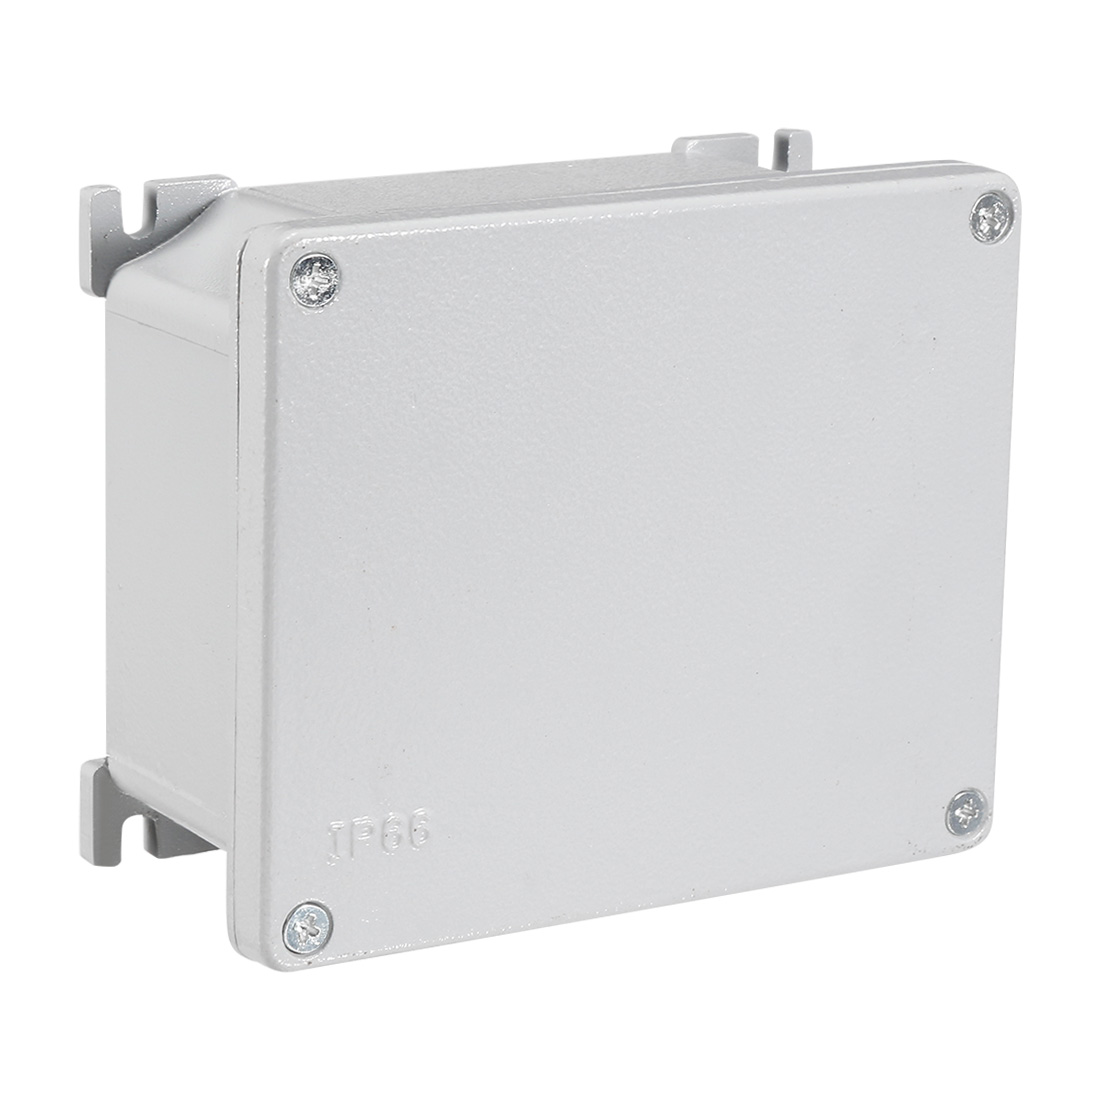 "5.5""x4.3""x2.3""(140mmx110mmx60mm) Aluminum Junction Box Universal Electric Project Enclosure"